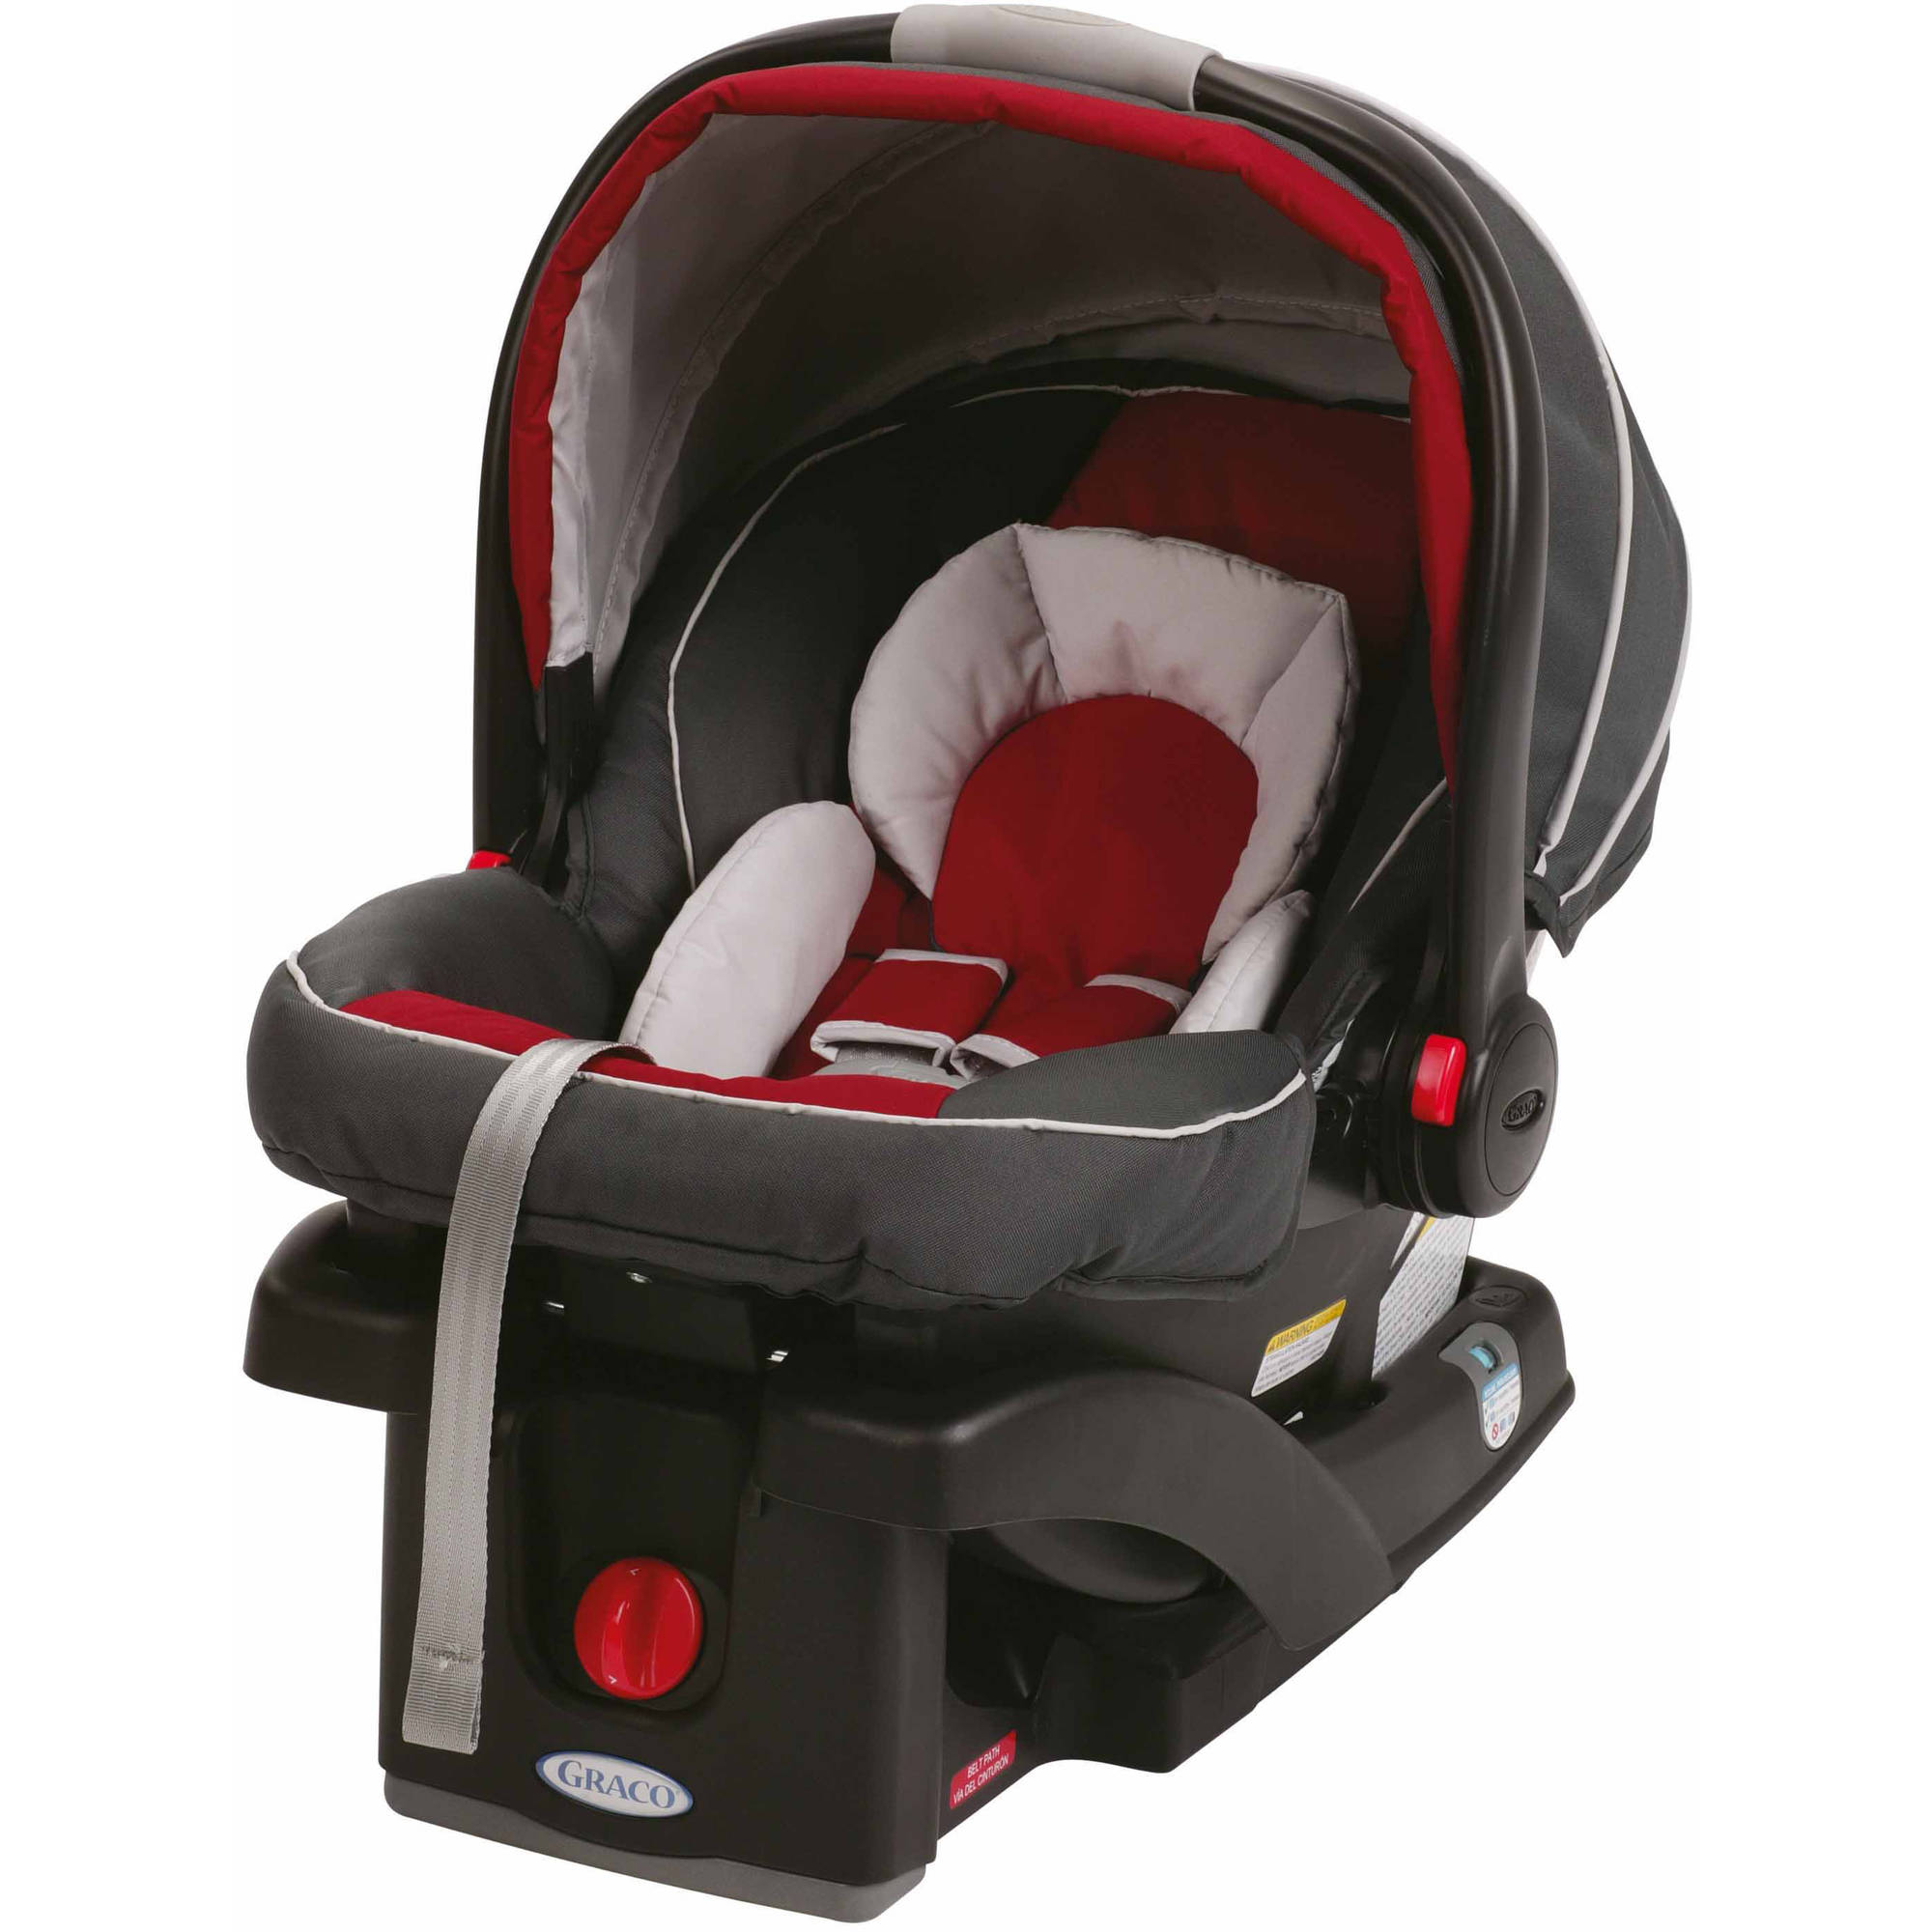 Graco Mirabella Travel System